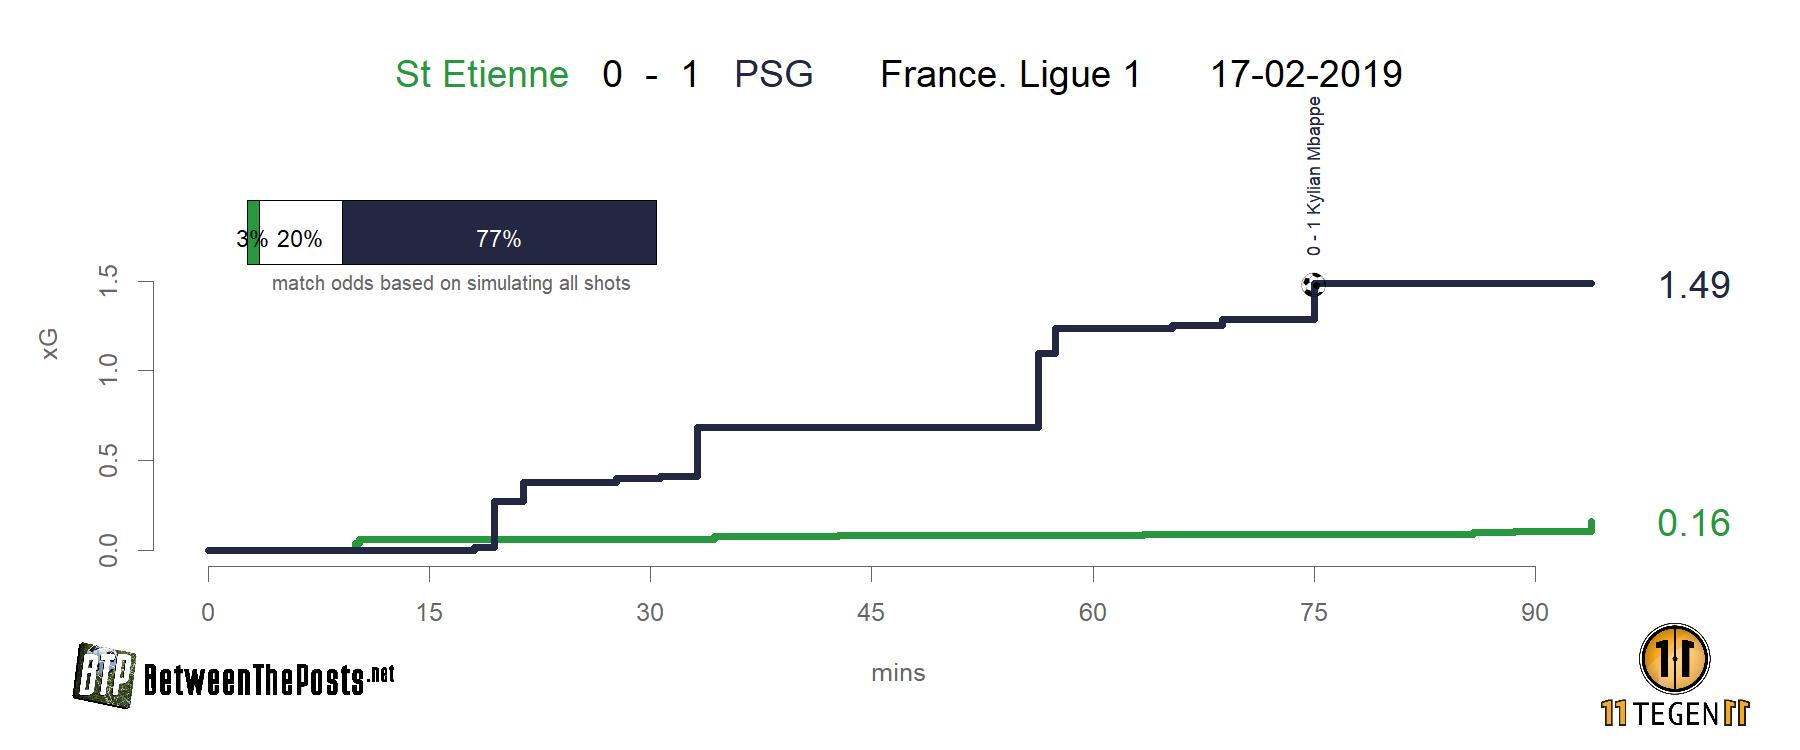 Expected goals plot Saint-Étienne - PSG 0-1 Ligue 1